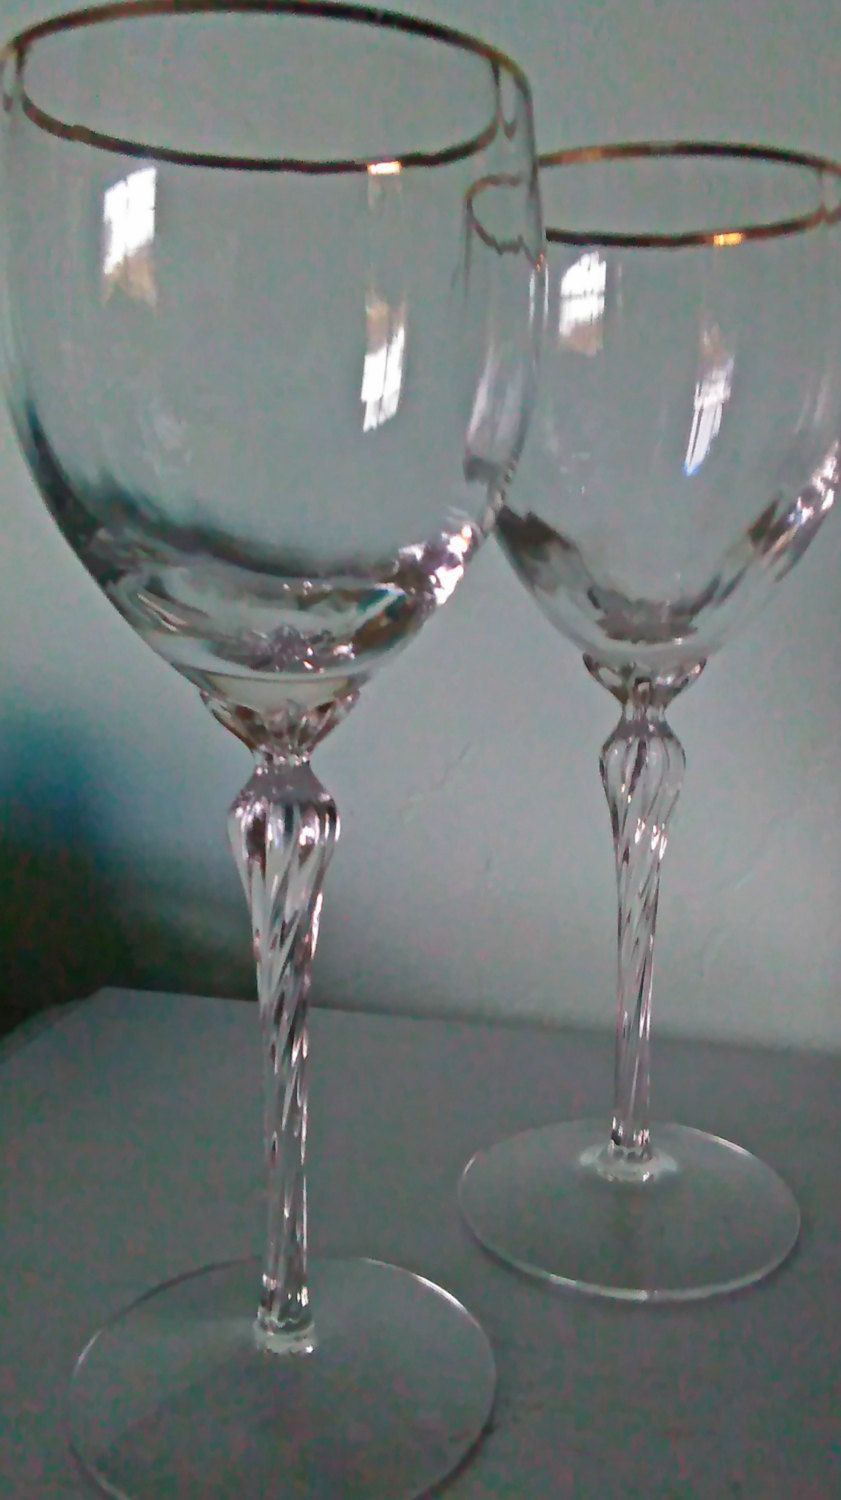 Lenox Fascination Lead Crystal Vase Of Vintage Wine Glasses by Lenox Crystal Body with Gold Rim and Twisted Regarding Vintage Wine Glasses by Lenox Crystal Body with Gold Rim and Twisted Long Stem Set Vintage Lenox Long Stemmed Wine Glasses with Gold Rim Set by Sparkleset